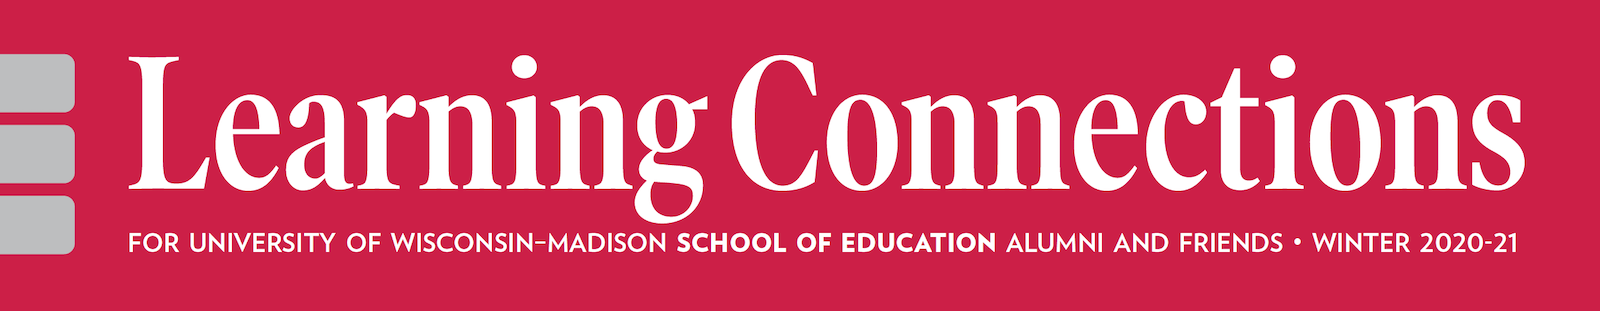 Learning Connections Winter 2020-21 header